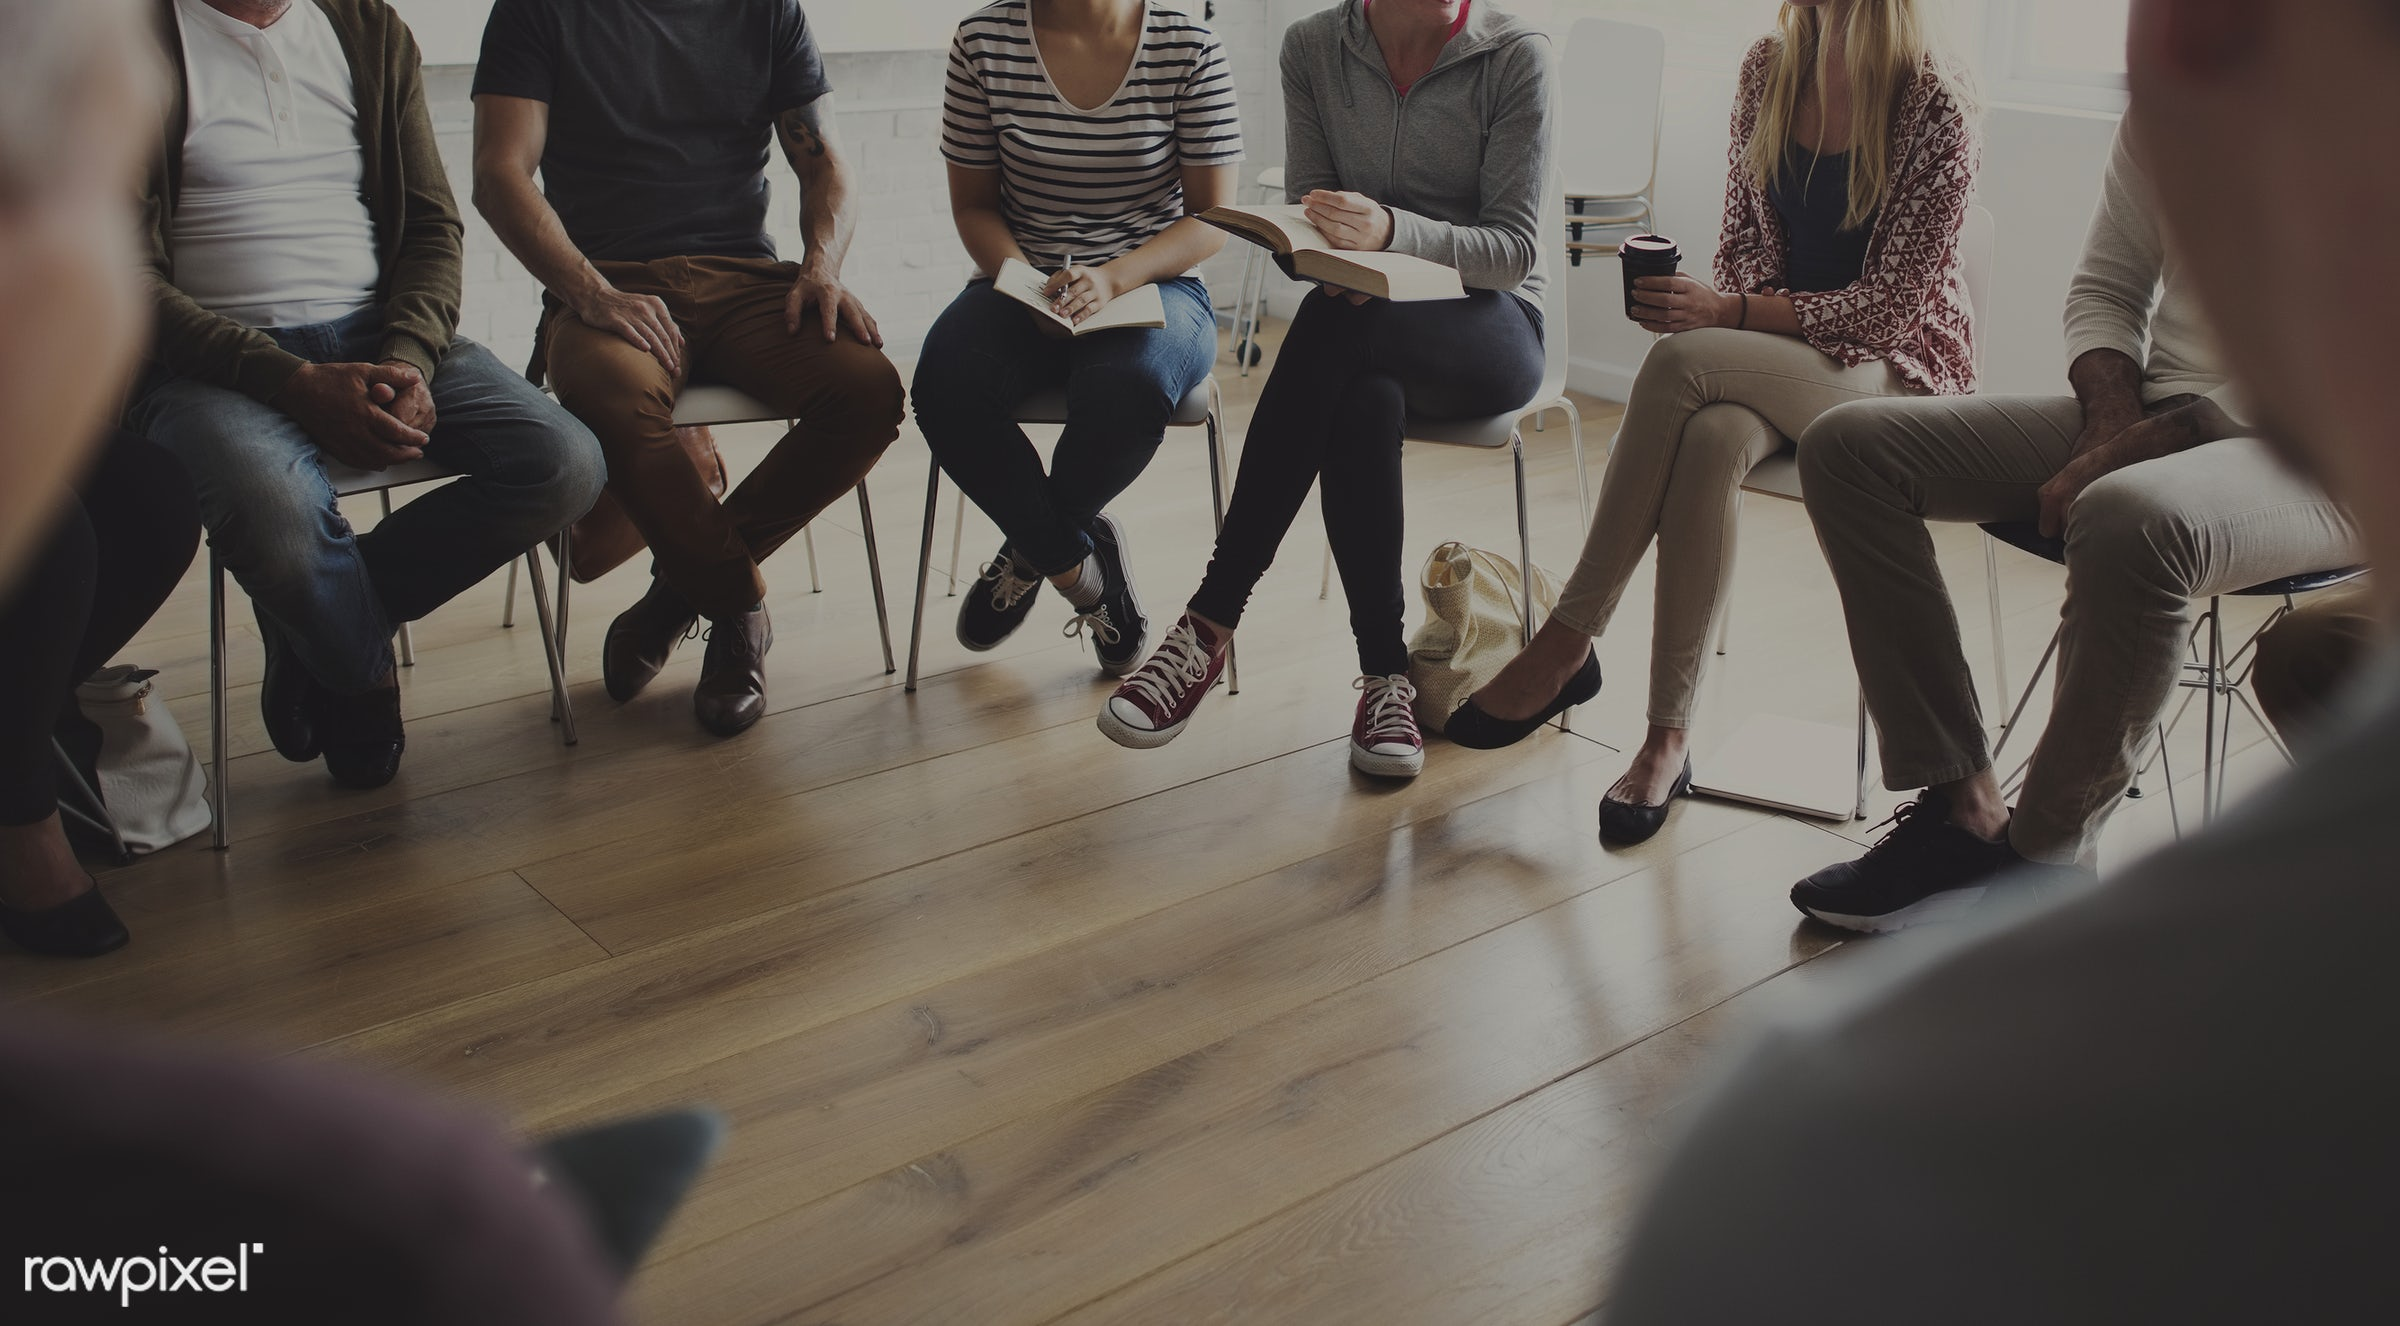 Diverse group of people in a seminar - discussion, diverse, bonding, circle, people, together, help, teamwork, share,...